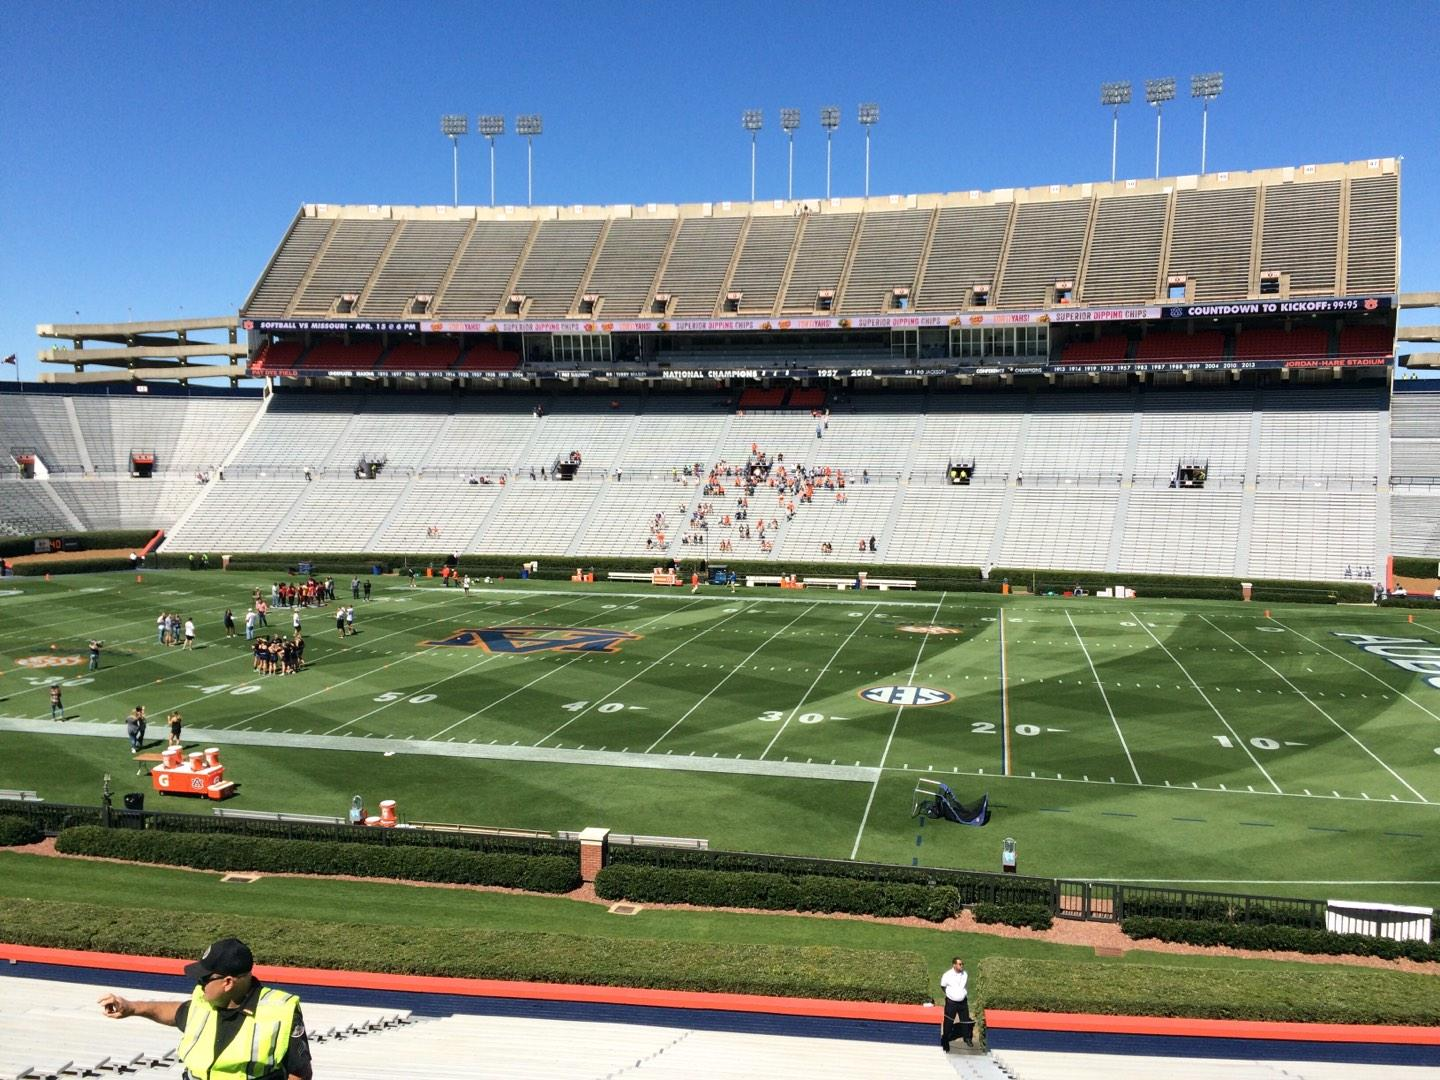 Jordan-Hare Stadium Section 31 Row 32 Seat 5